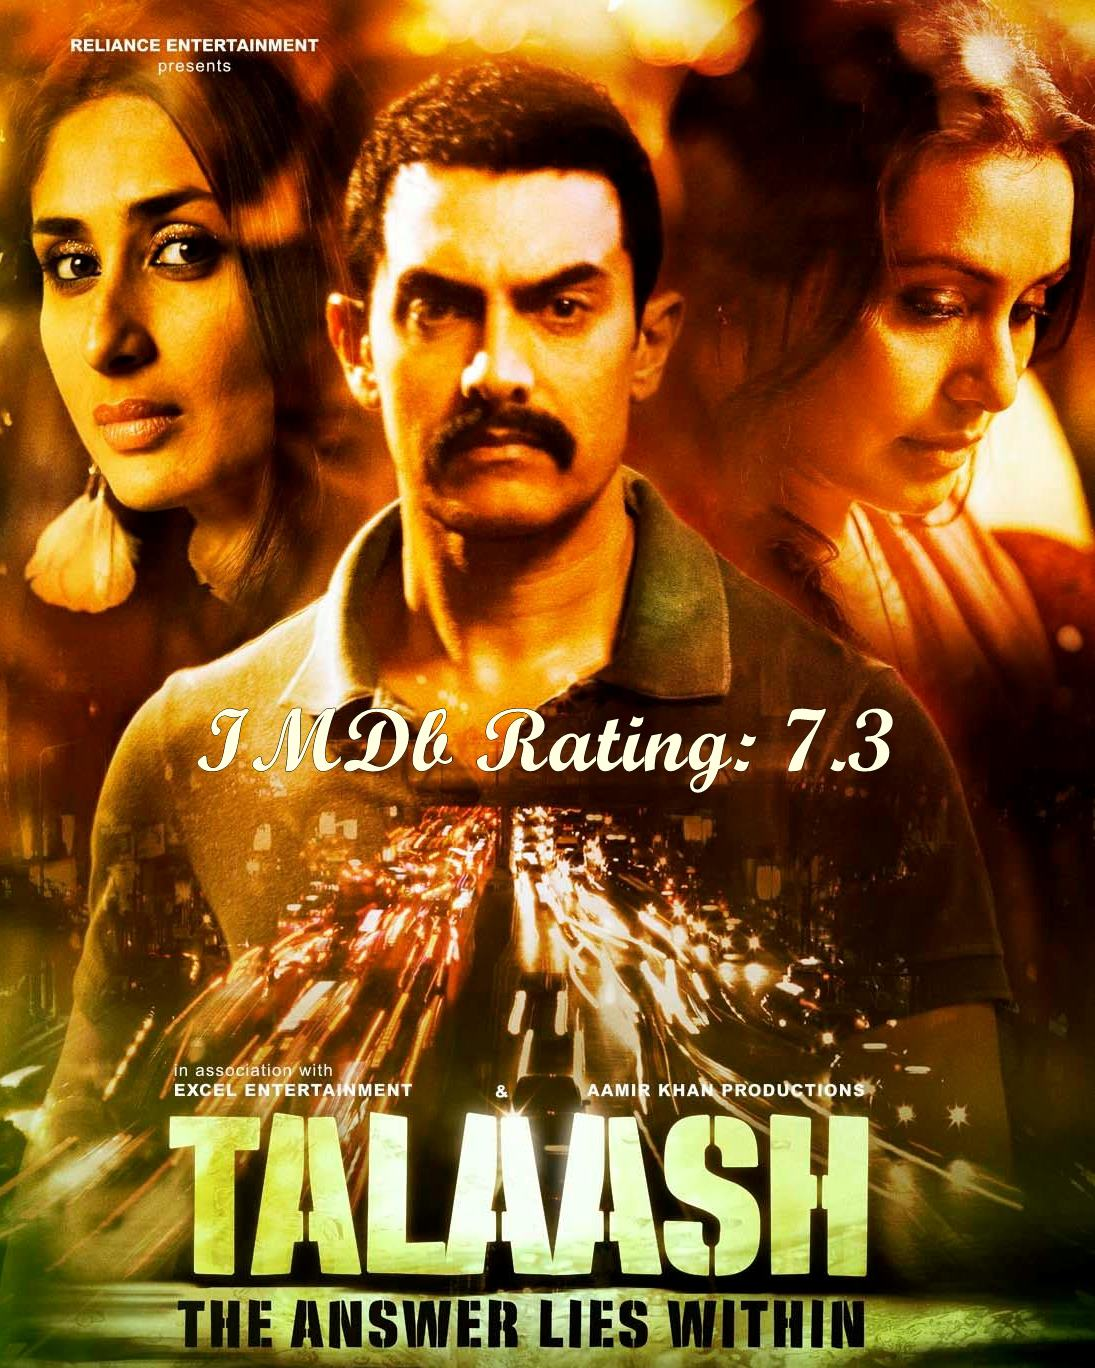 Top 10 Kareena Kapoor Khan Movies based on IMDb Ratings- Talaash